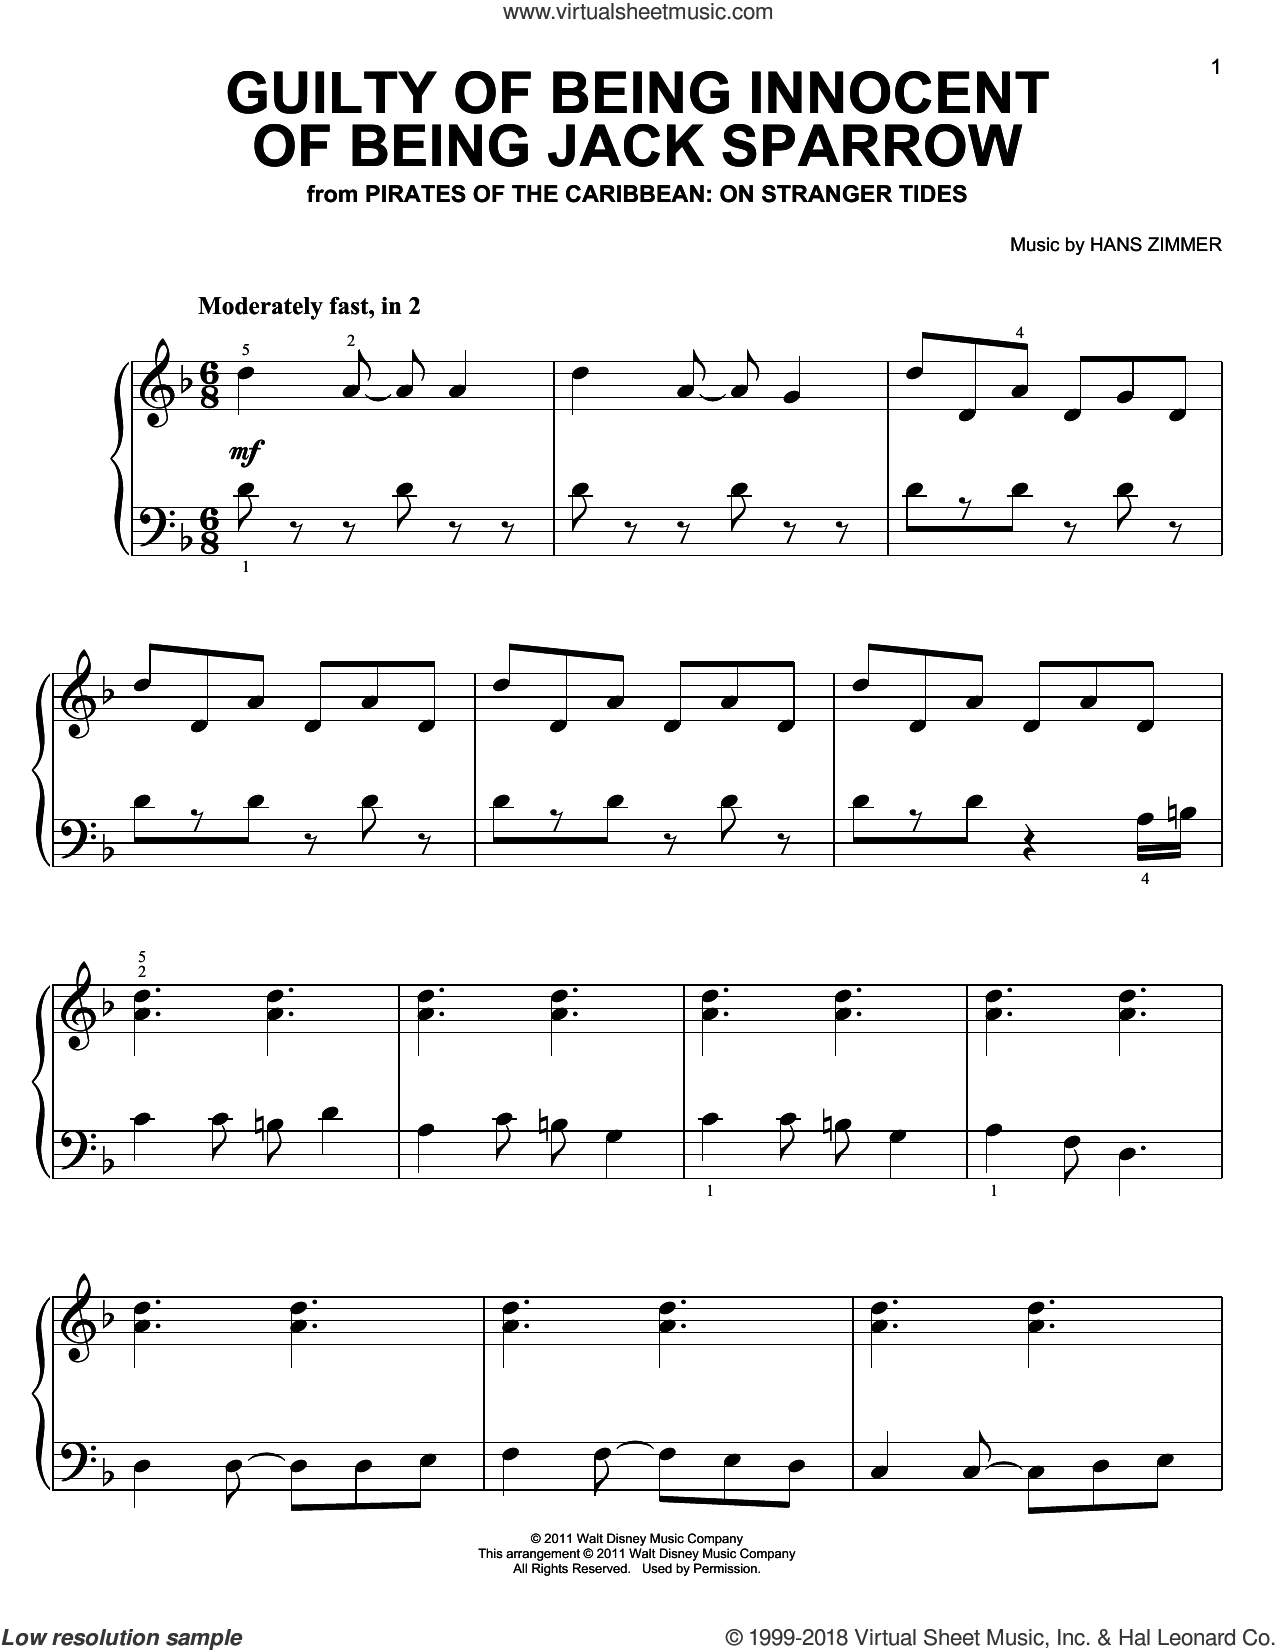 Guilty Of Being Innocent Of Being Jack Sparrow sheet music for piano solo by Hans Zimmer